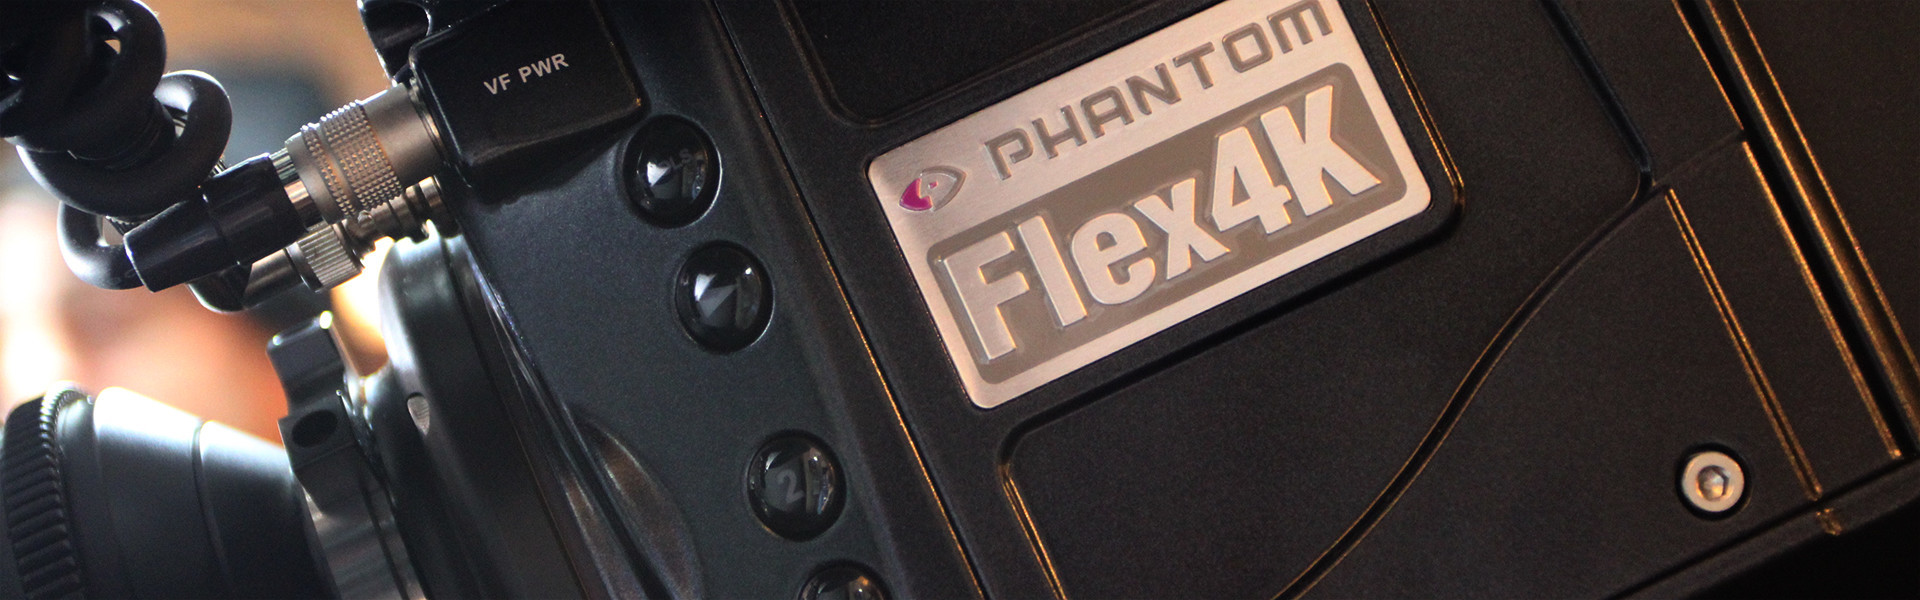 Header image for article Phantom Flex4K Field Tests & First Impressions